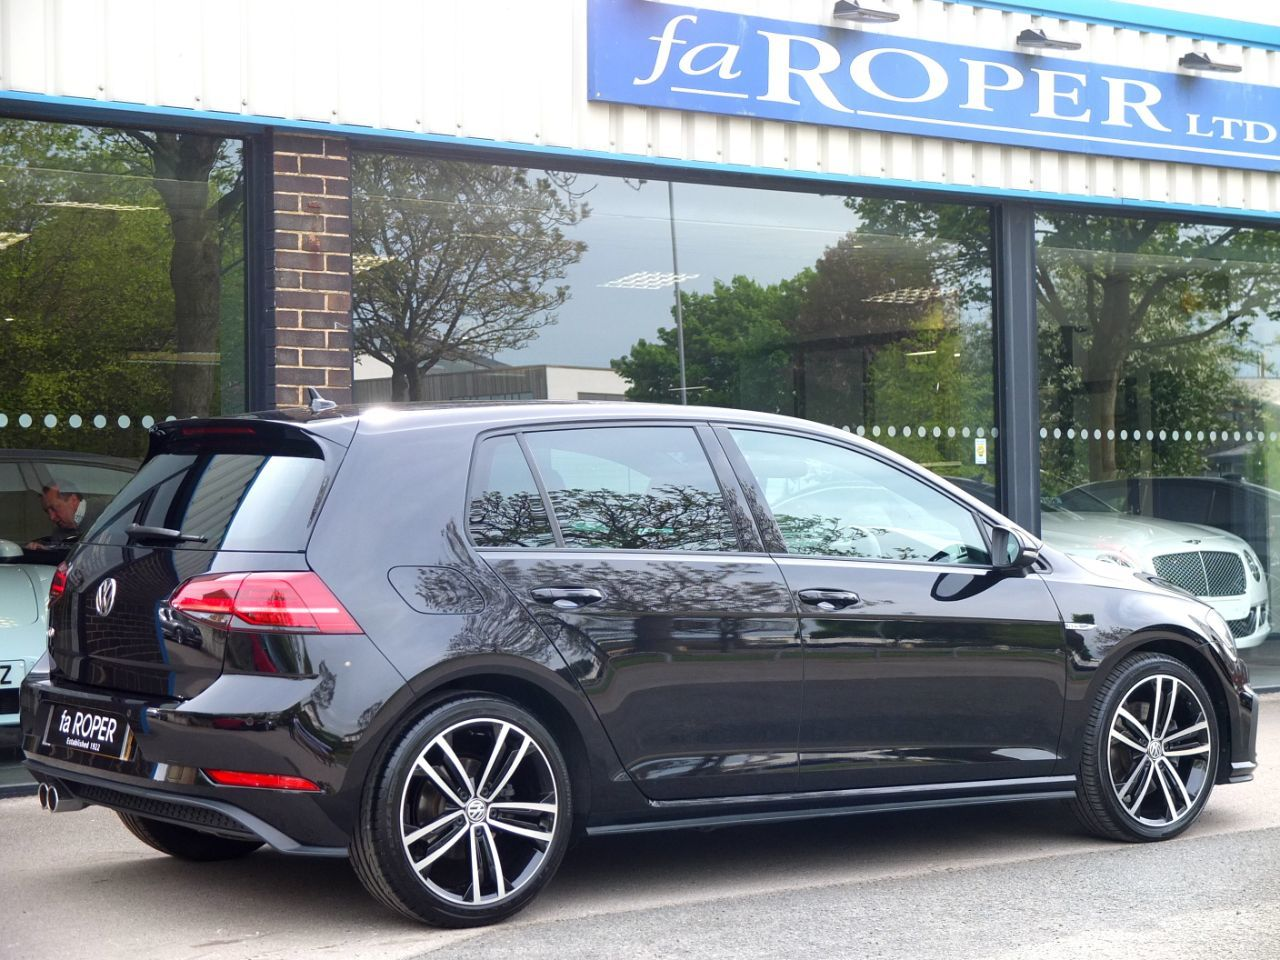 Volkswagen Golf 2.0 TDI GTD 5 door DSG 184ps Hatchback Diesel Deep Black Pearl